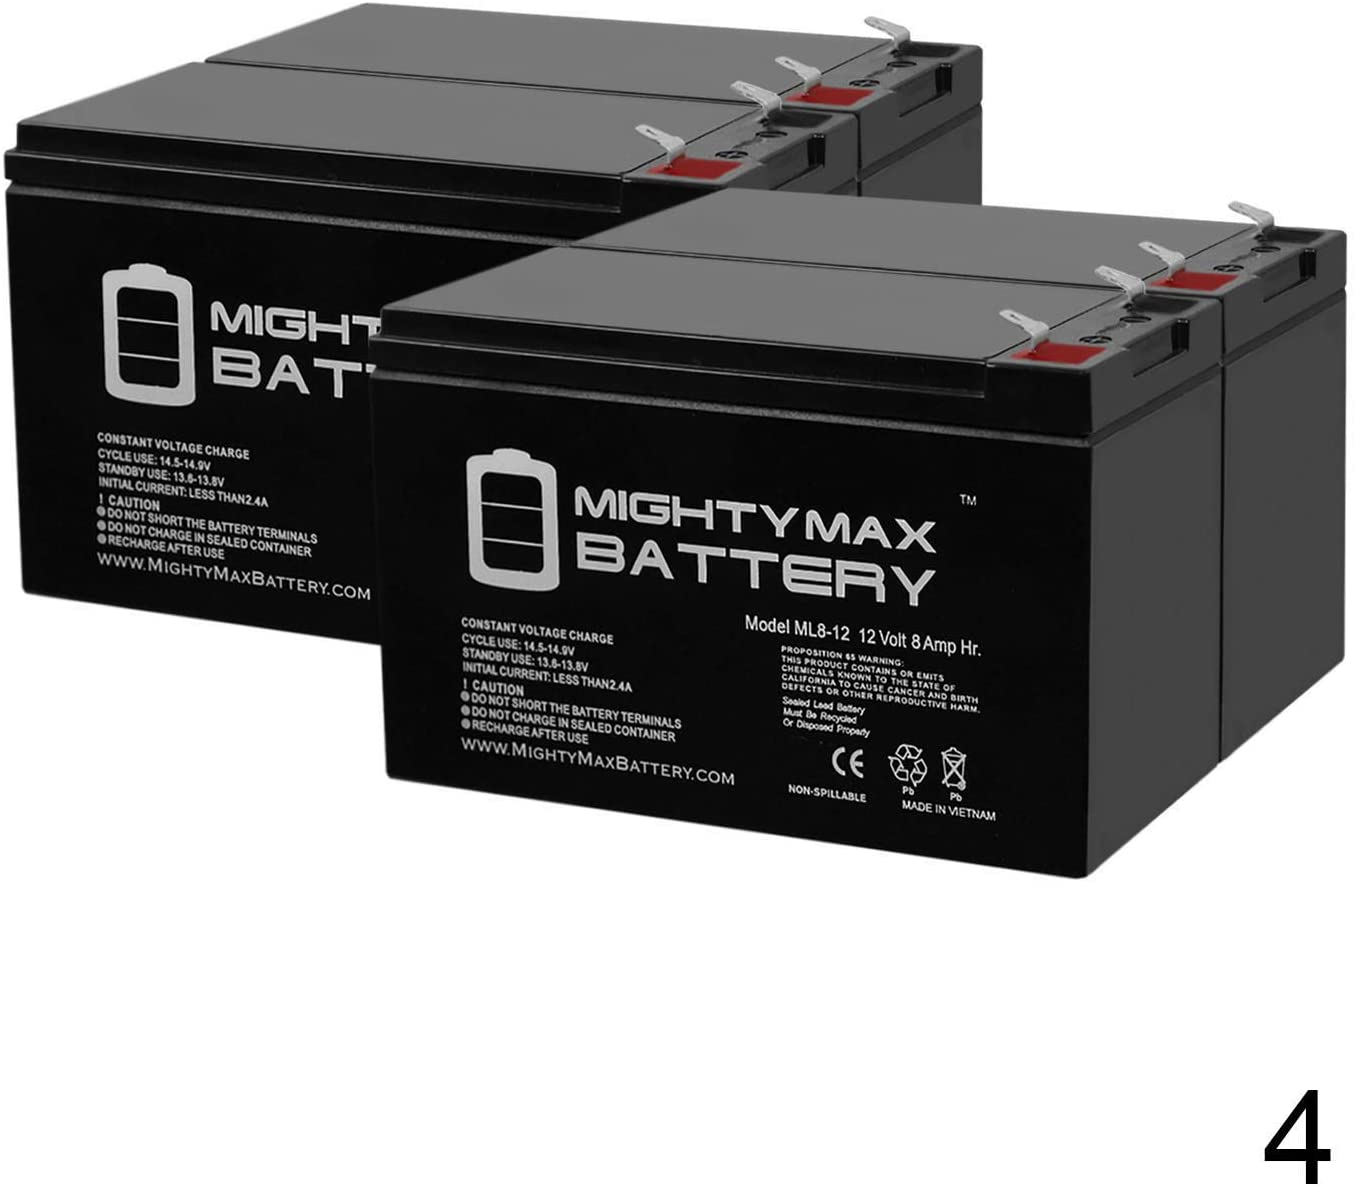 Mighty Max Battery 12V 8AH Replaces Belkin Residential Gateway RG Backup Battery - 4 Pack Brand Product